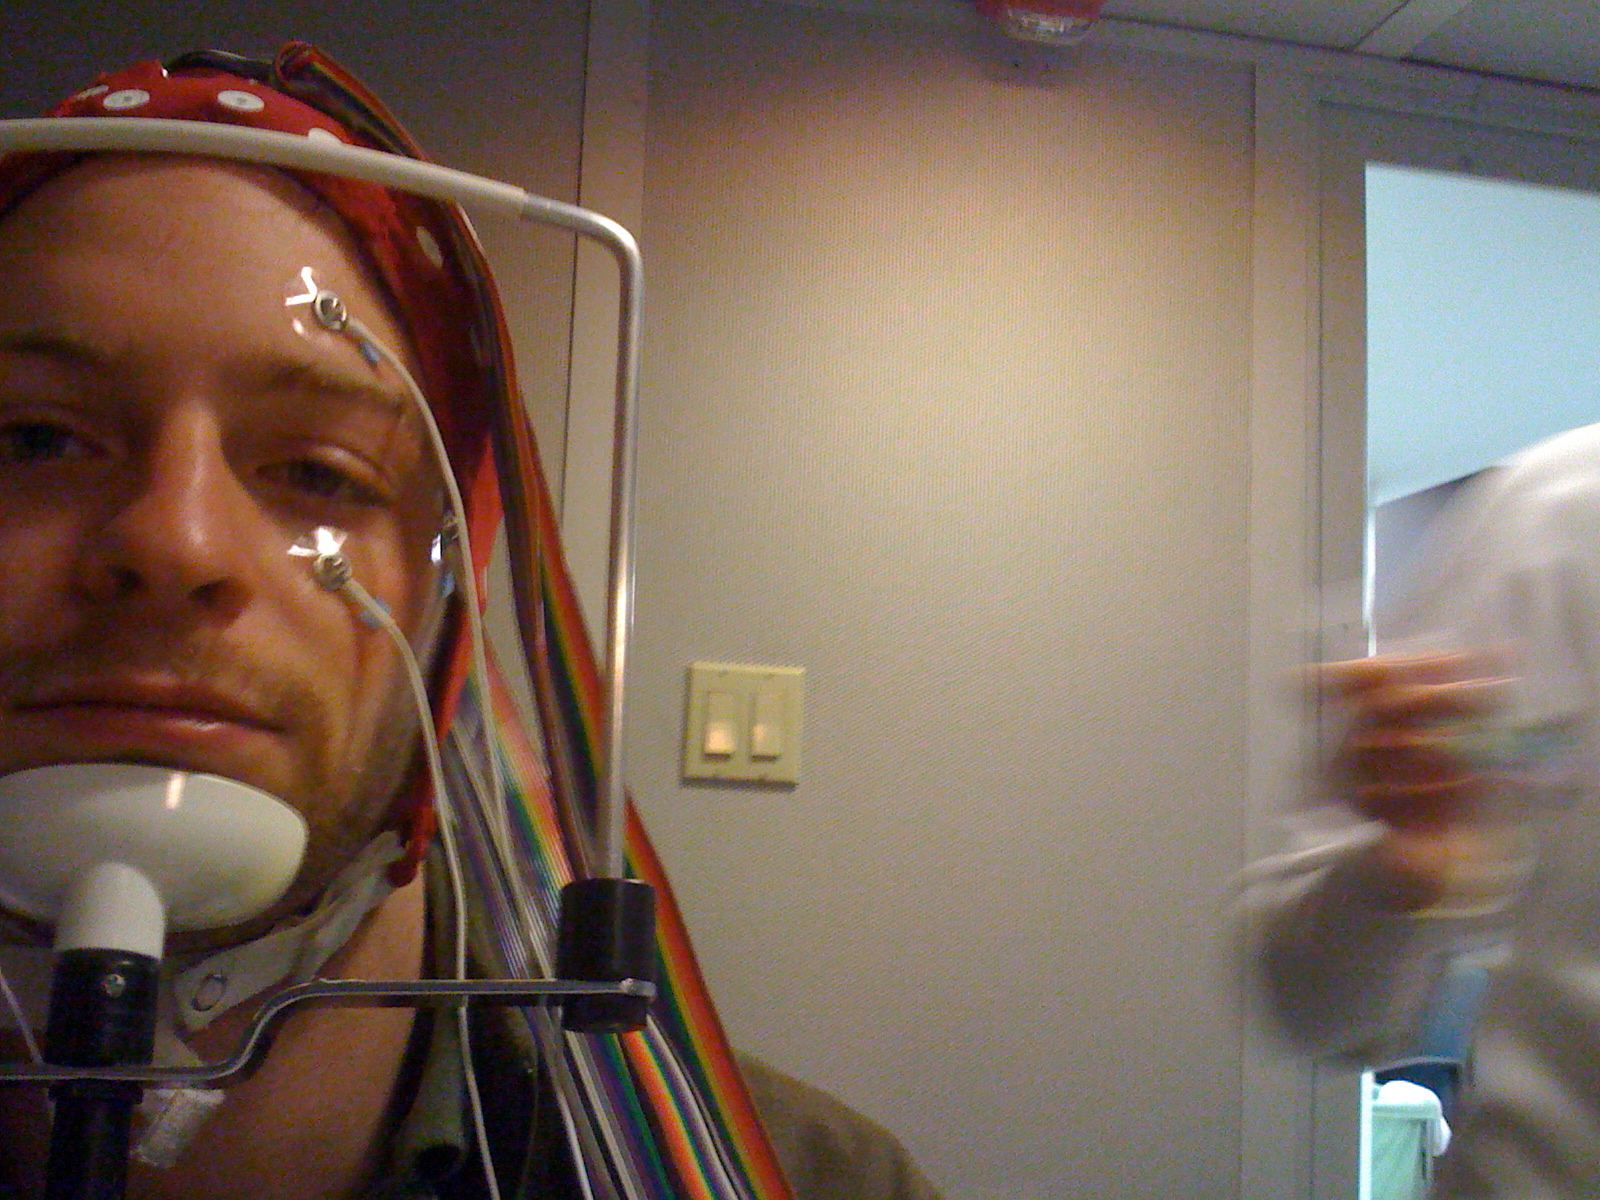 Man with wires connected to his face and head.